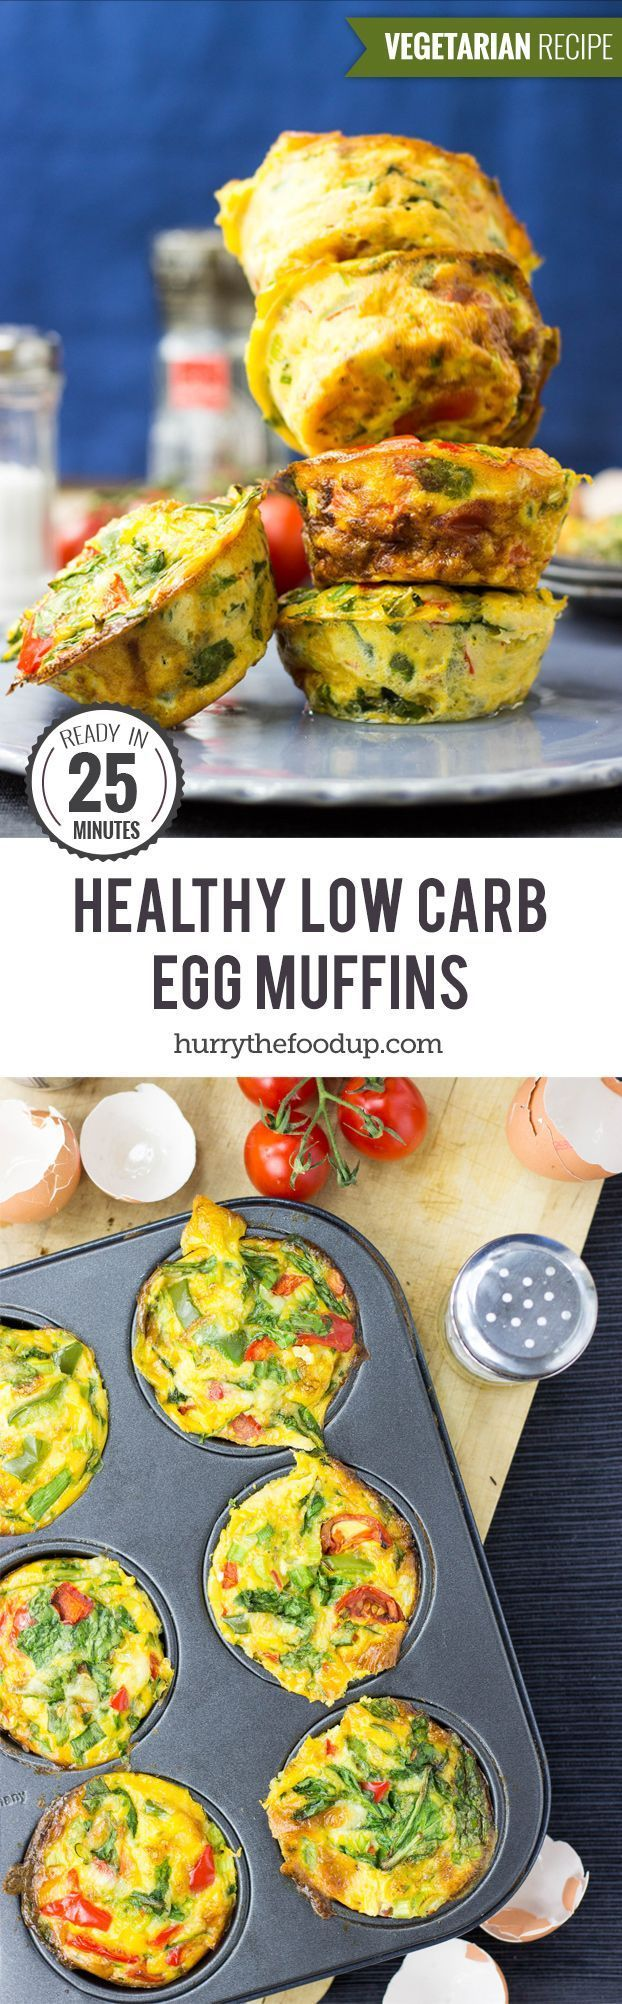 Healthy, Low Carb Egg Breakfast Muffins #vegetarian #muffin